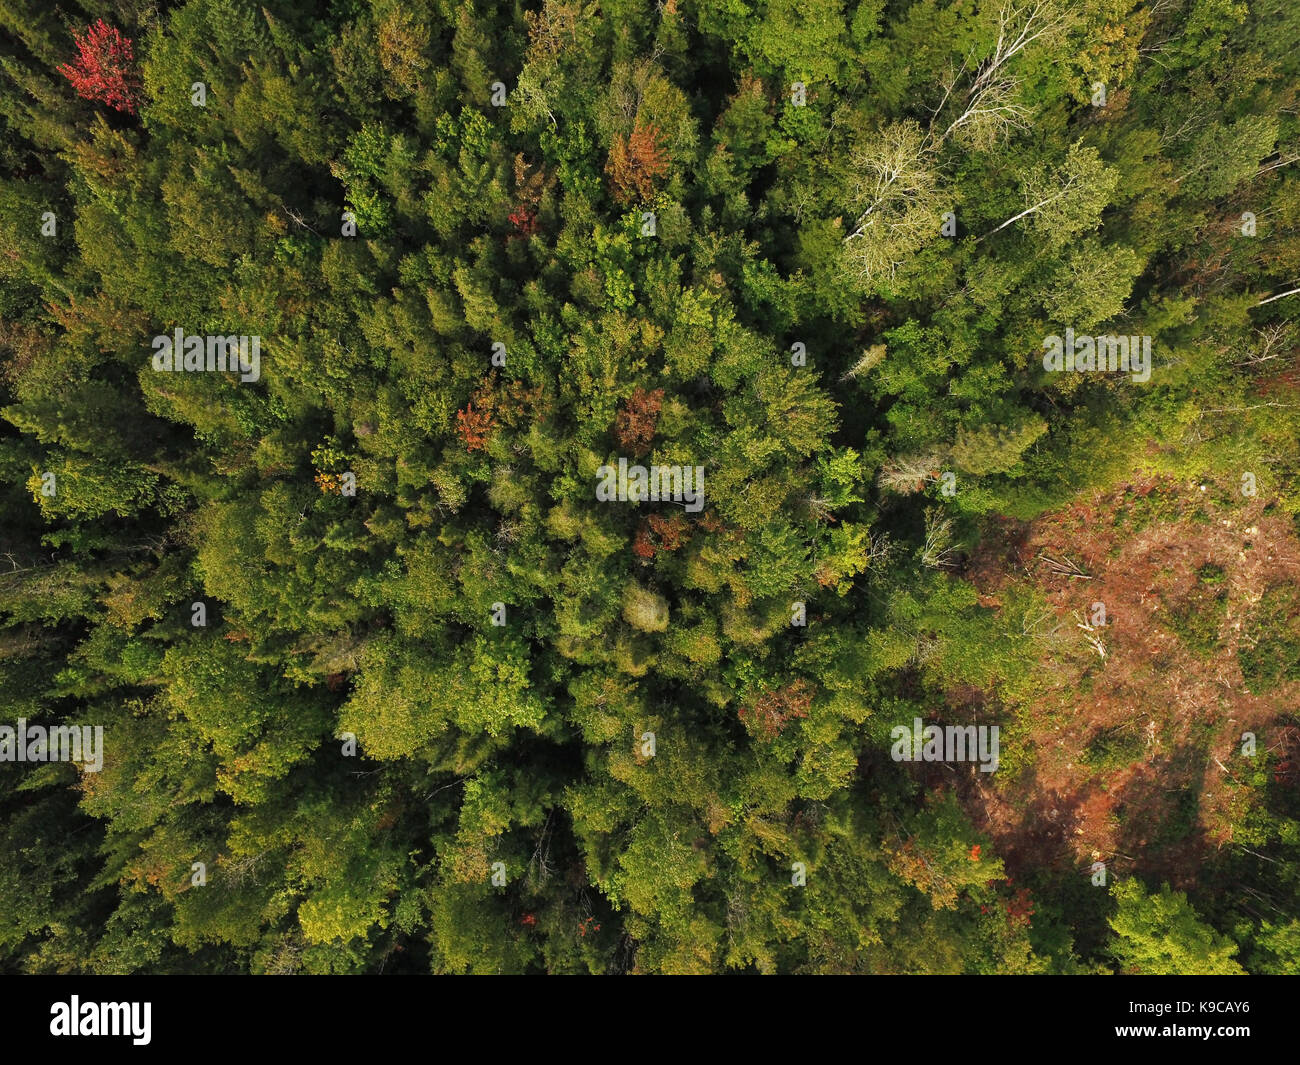 Aerial view of boreal forest evergreen trees - Stock Image